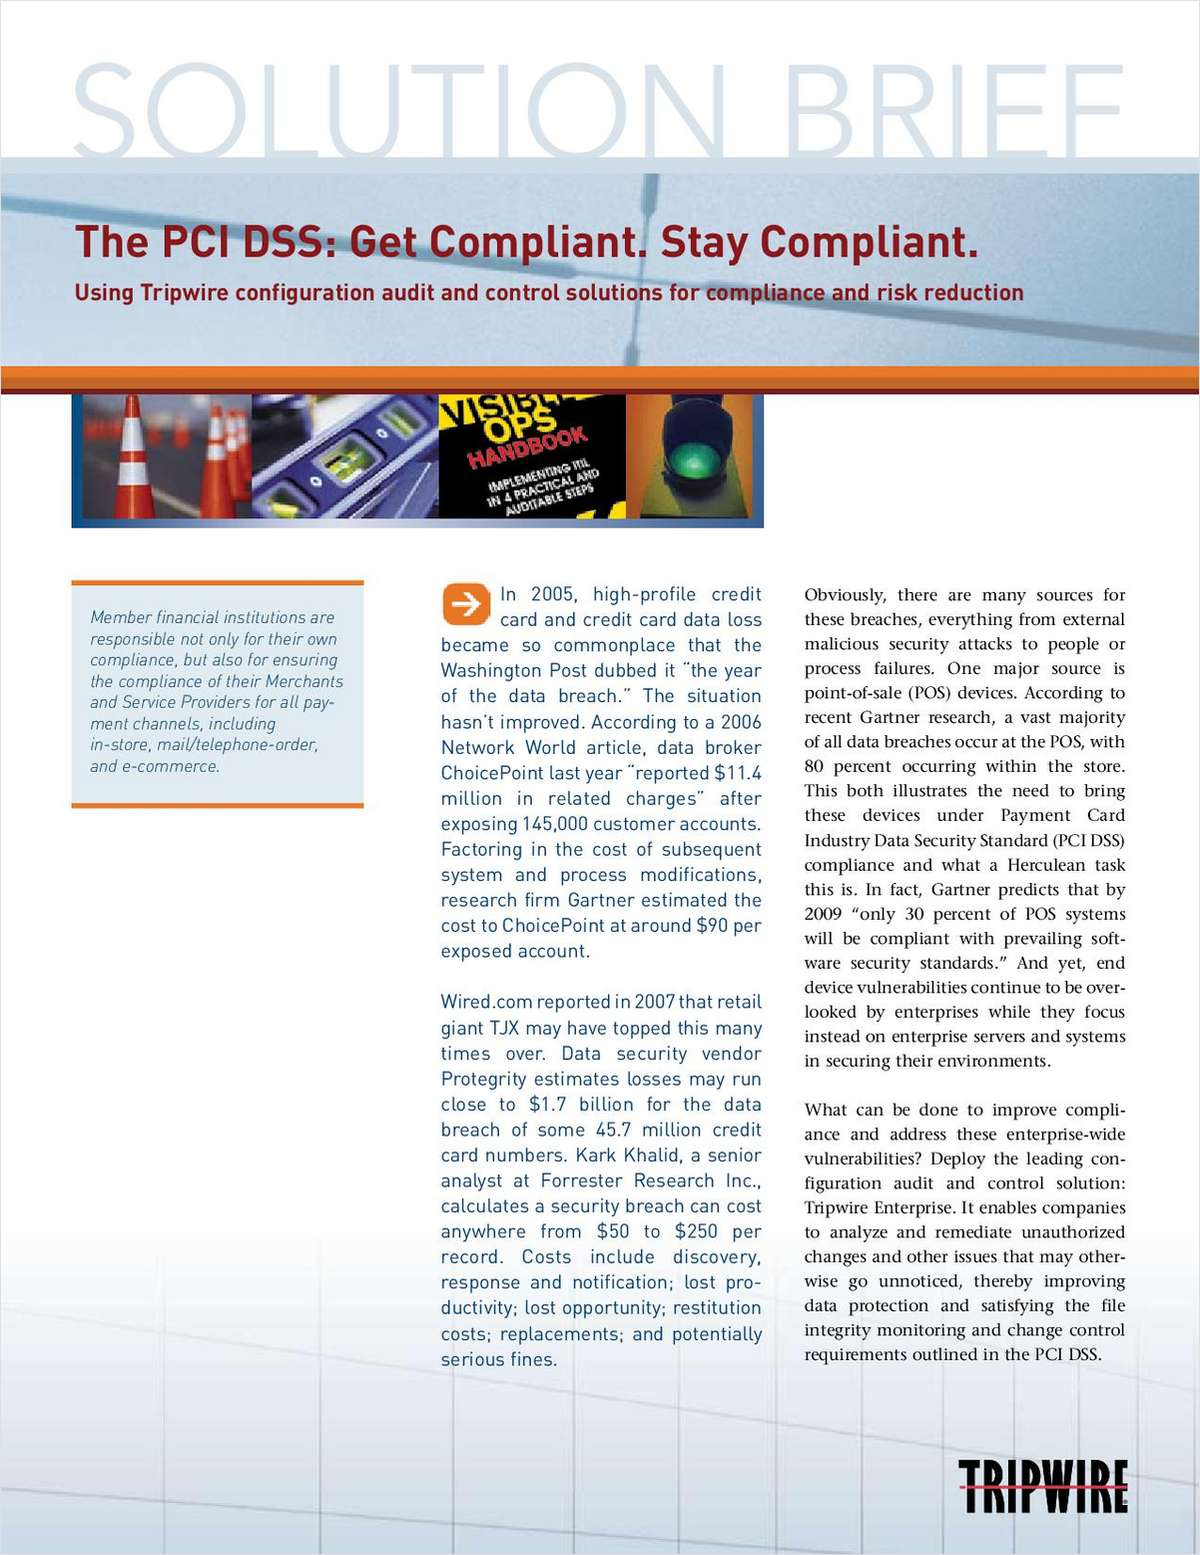 The PCI DSS: Get Compliant. Stay Compliant.